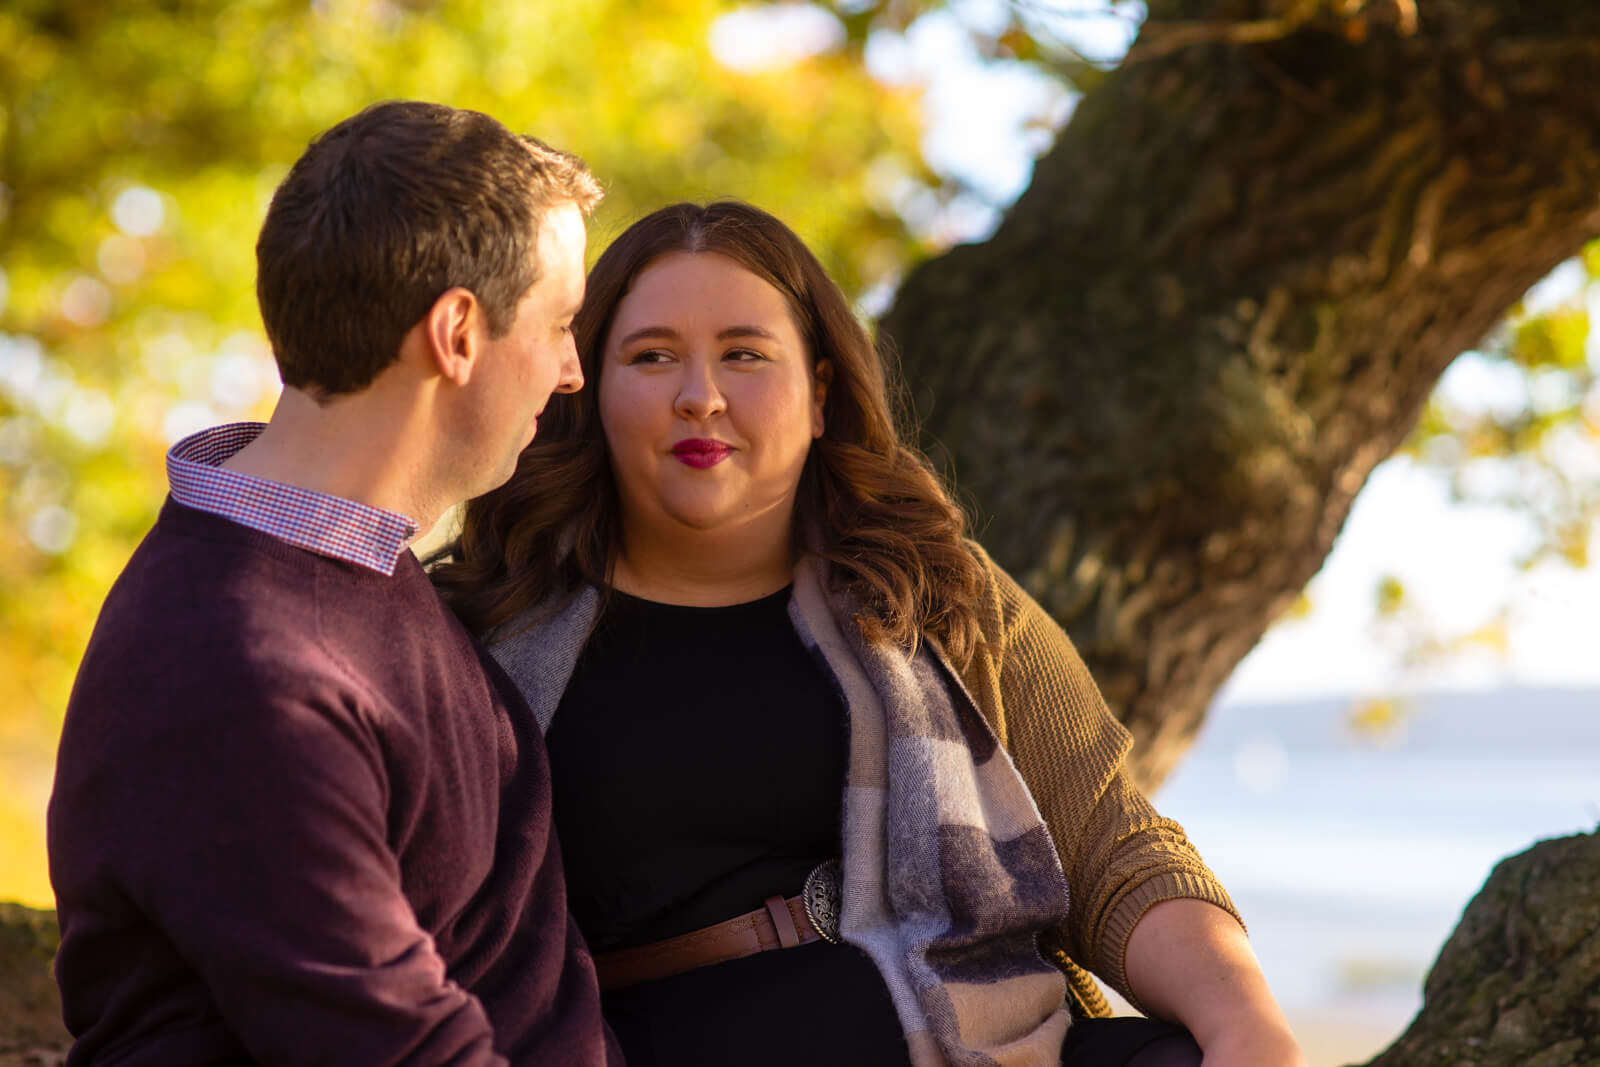 Engagement photo of a young couple sitting on a tre looking at one another